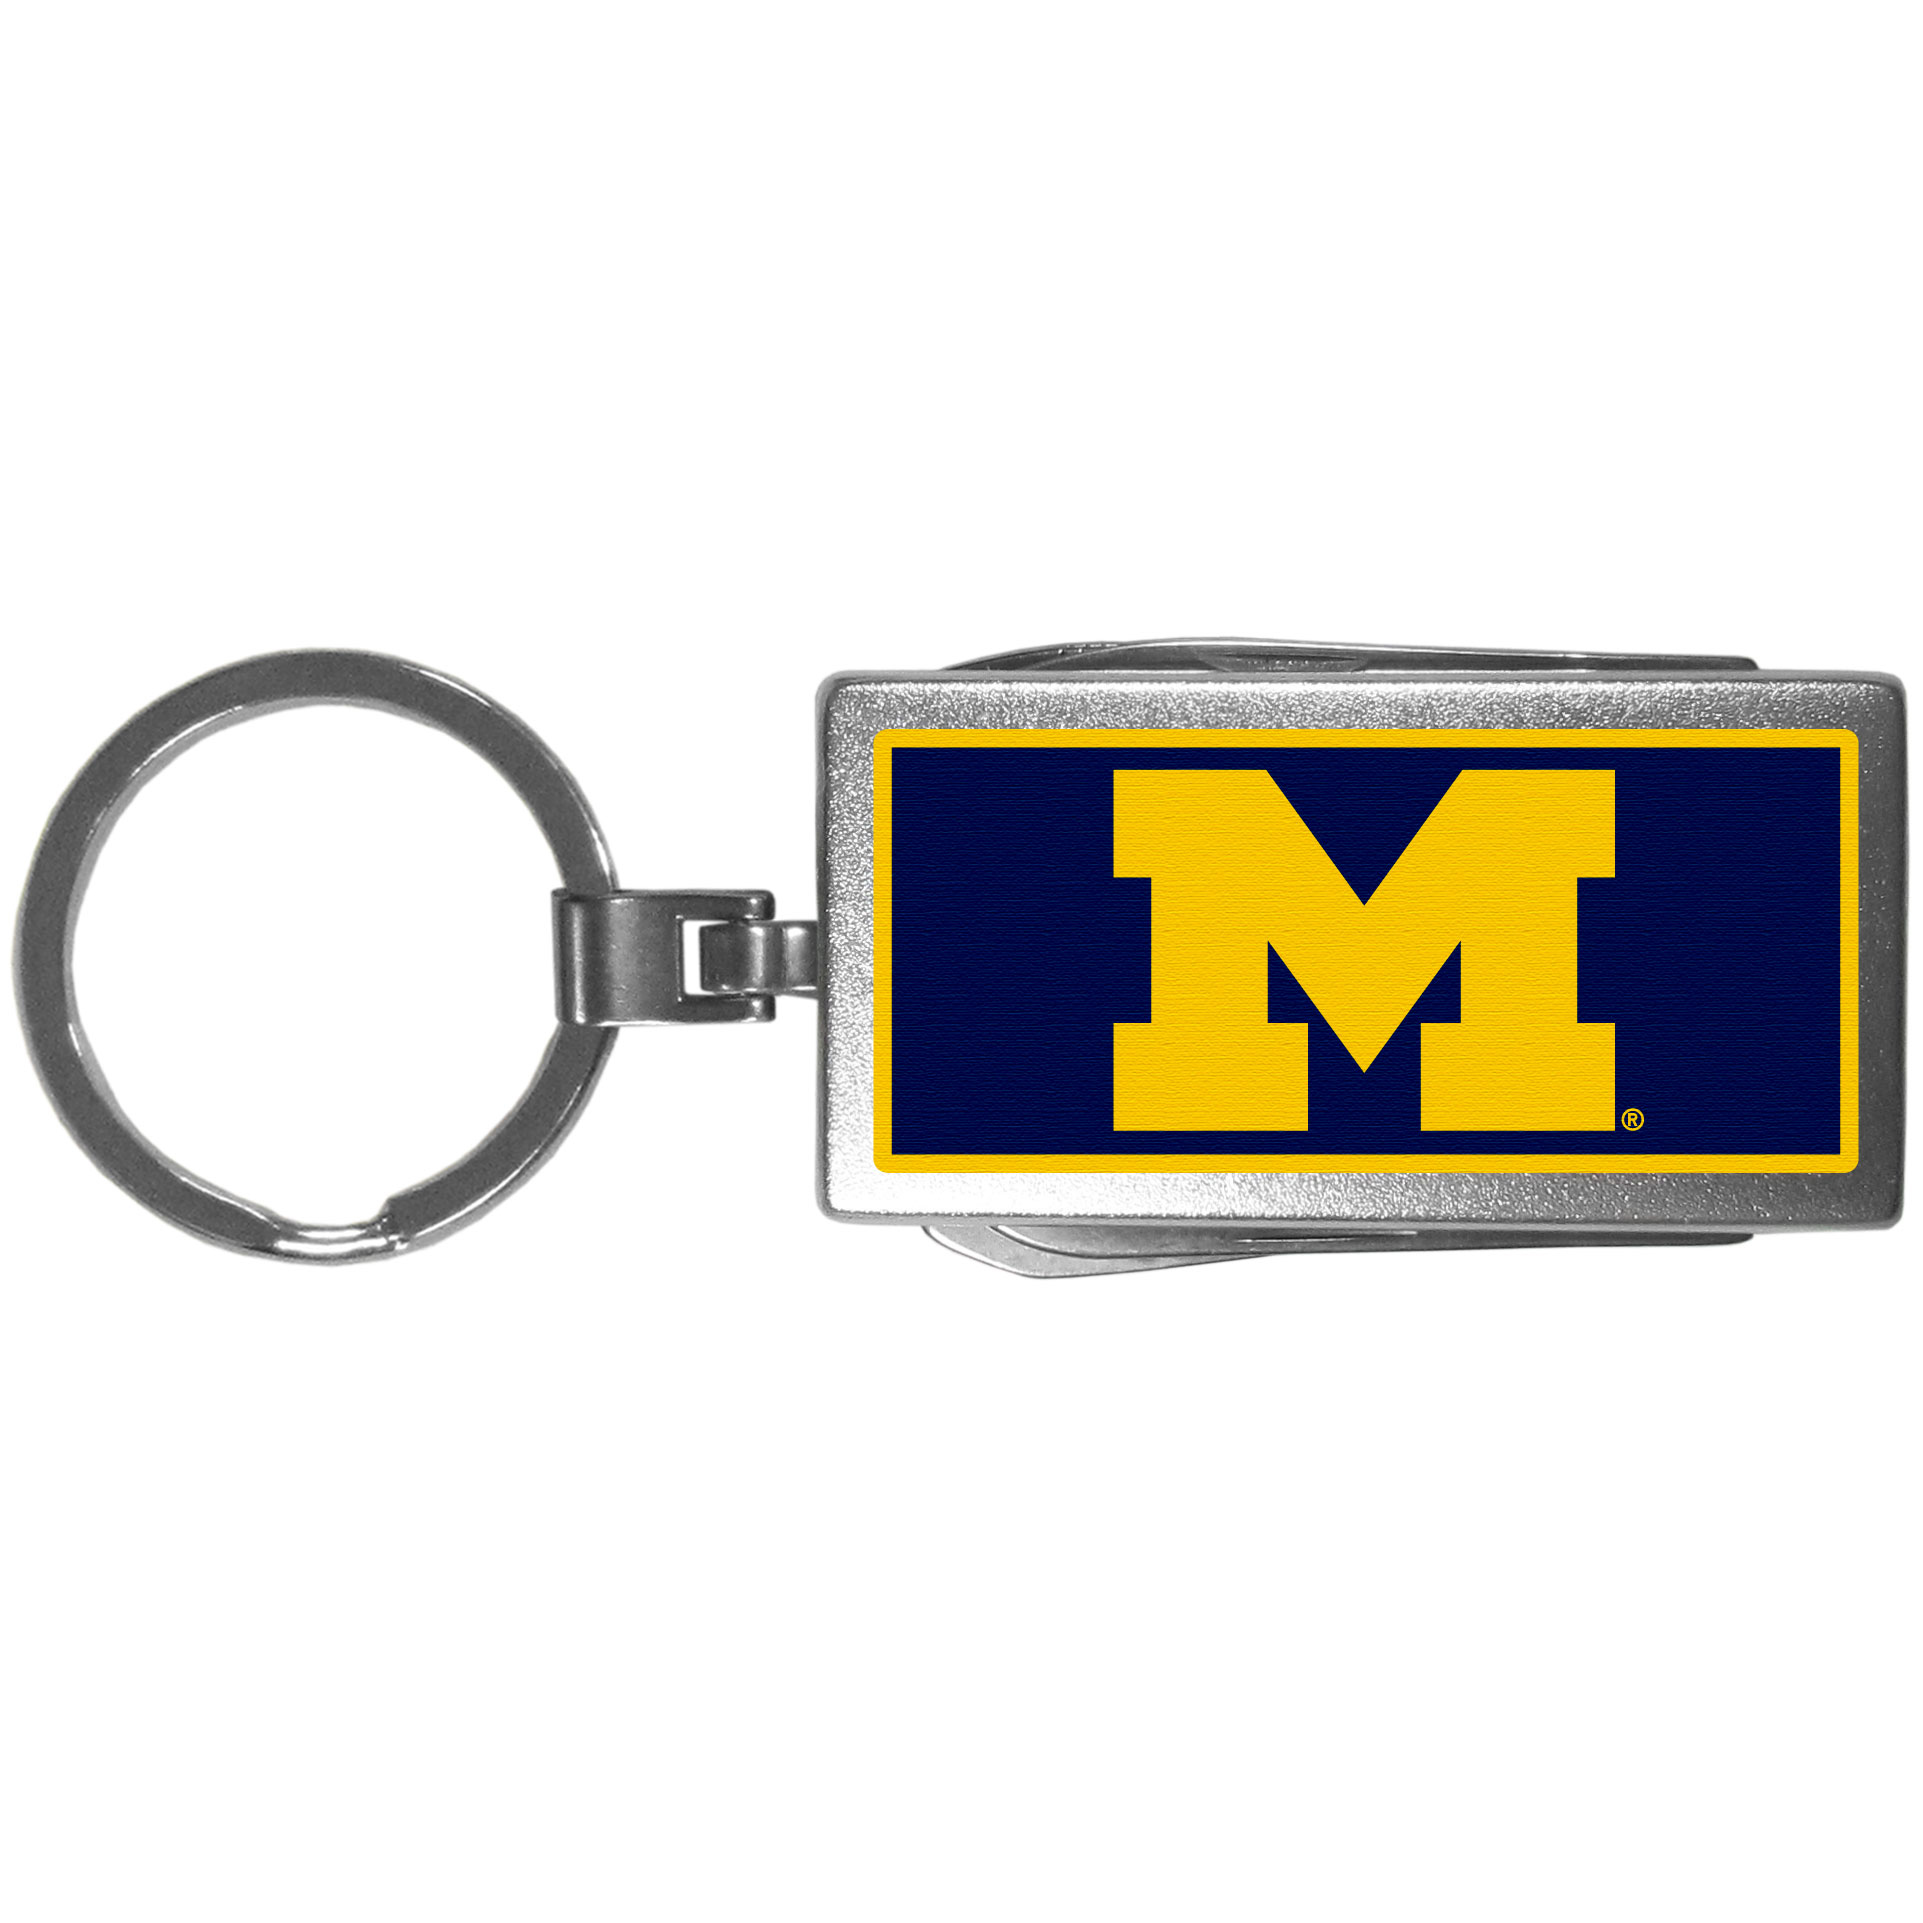 Michigan Wolverines Multi-tool Key Chain, Logo - Be the hero at the tailgate, camping, or on a Friday night with your Michigan Wolverines Multi-Tool Keychain which comes complete with bottle opener, scissors, knife, nail file and screw driver. Be it opening a package or a beverage Siskiyou's Multi-Tool Keychain goes wherever your keys do. The keychain hangs at 4 inches long when closed.